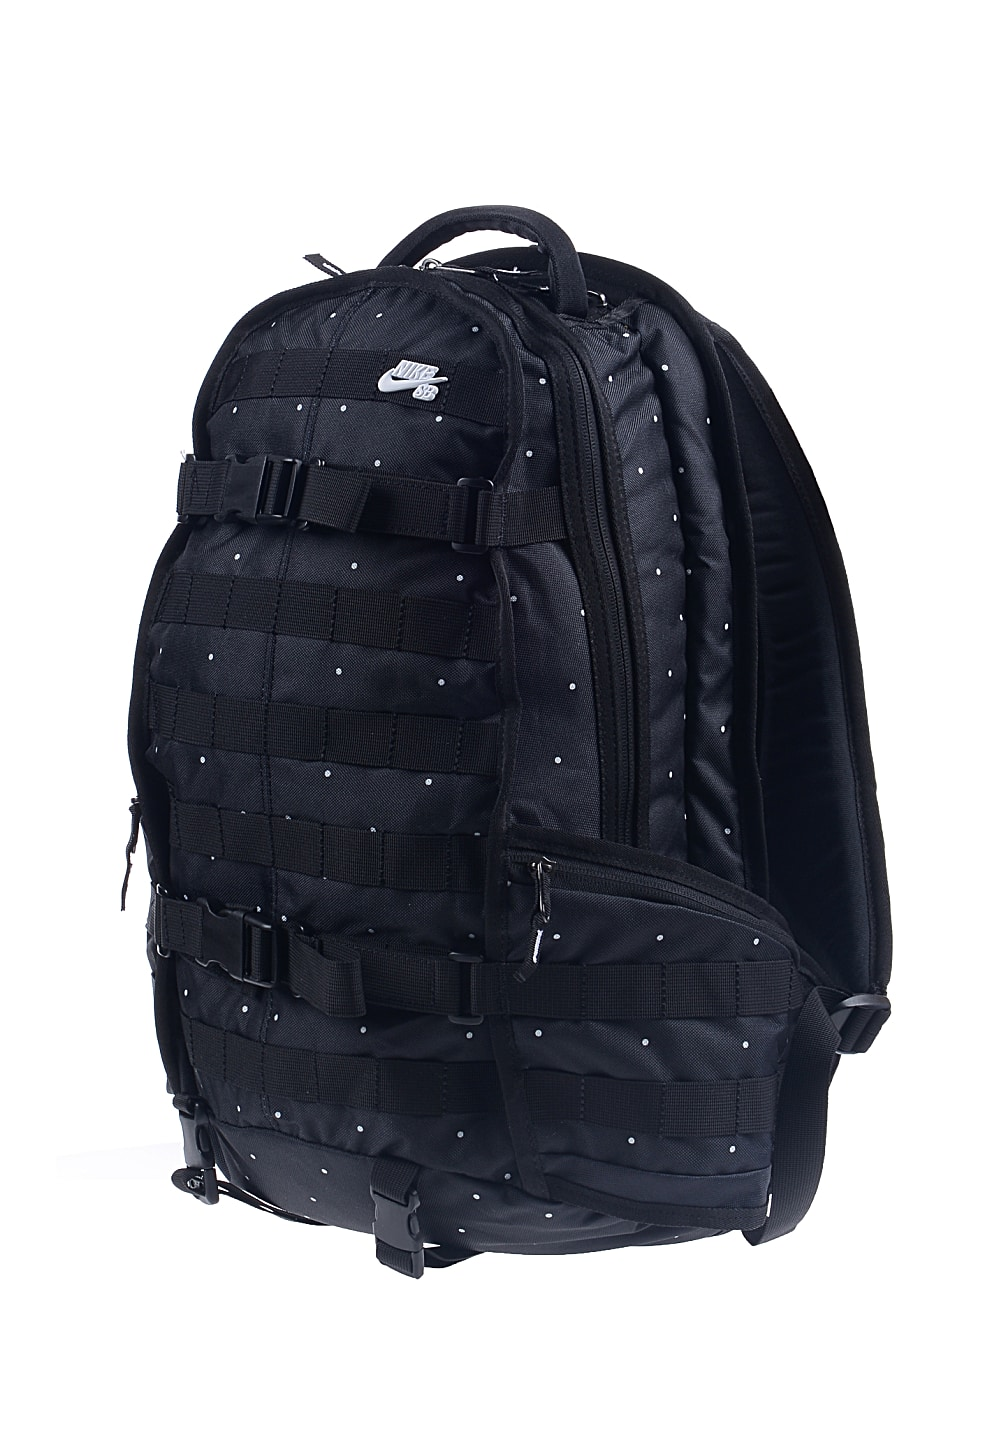 nike sb rpm rucksack f r herren schwarz planet sports. Black Bedroom Furniture Sets. Home Design Ideas